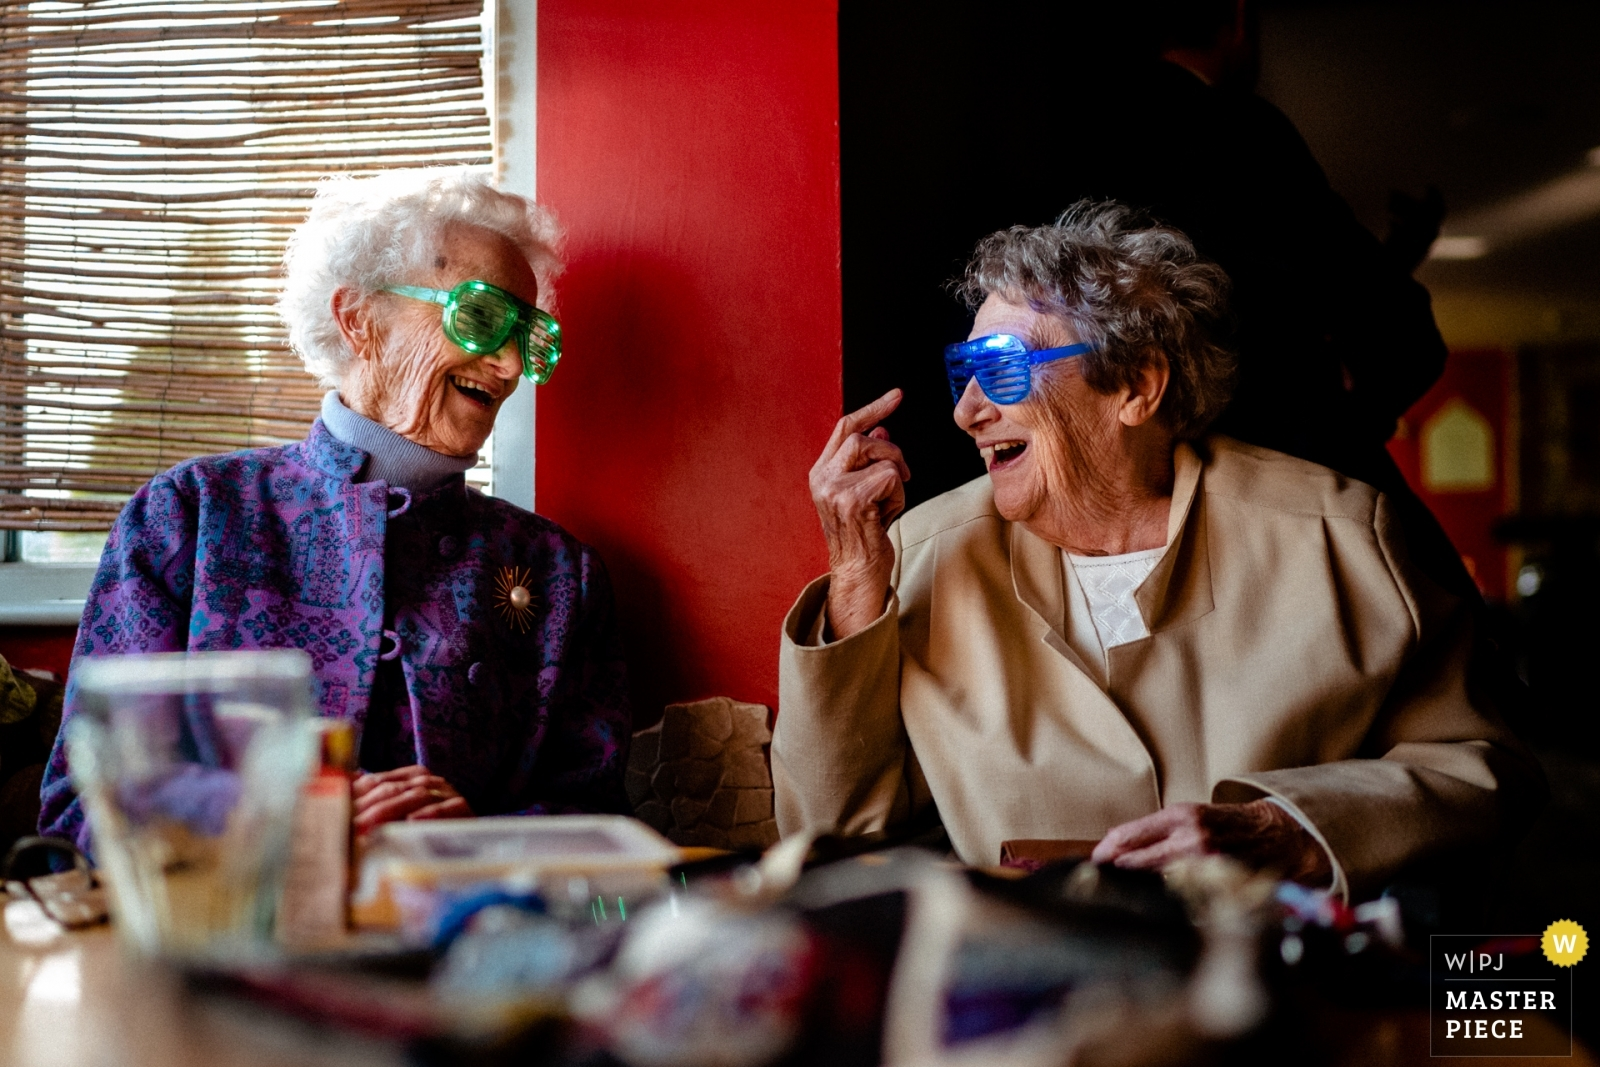 Grandmas in glasses - Hertfordshire, England Wedding Photography -  | The Mussing Sock, Cambridge, UK